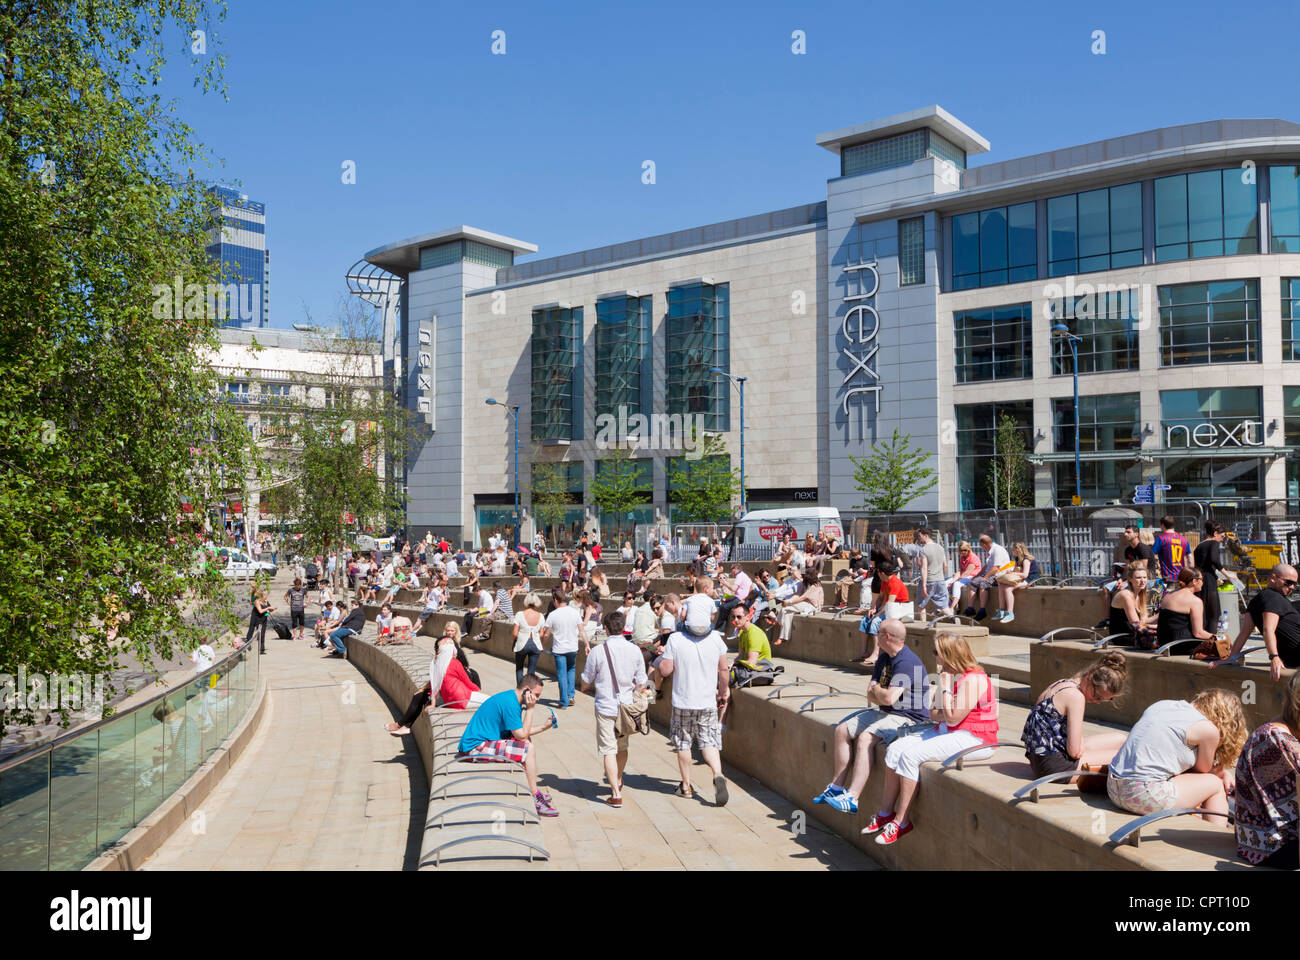 Crowds of shoppers outside Next store at the Arndale centre Manchester City Centre England UK GB  Europe - Stock Image